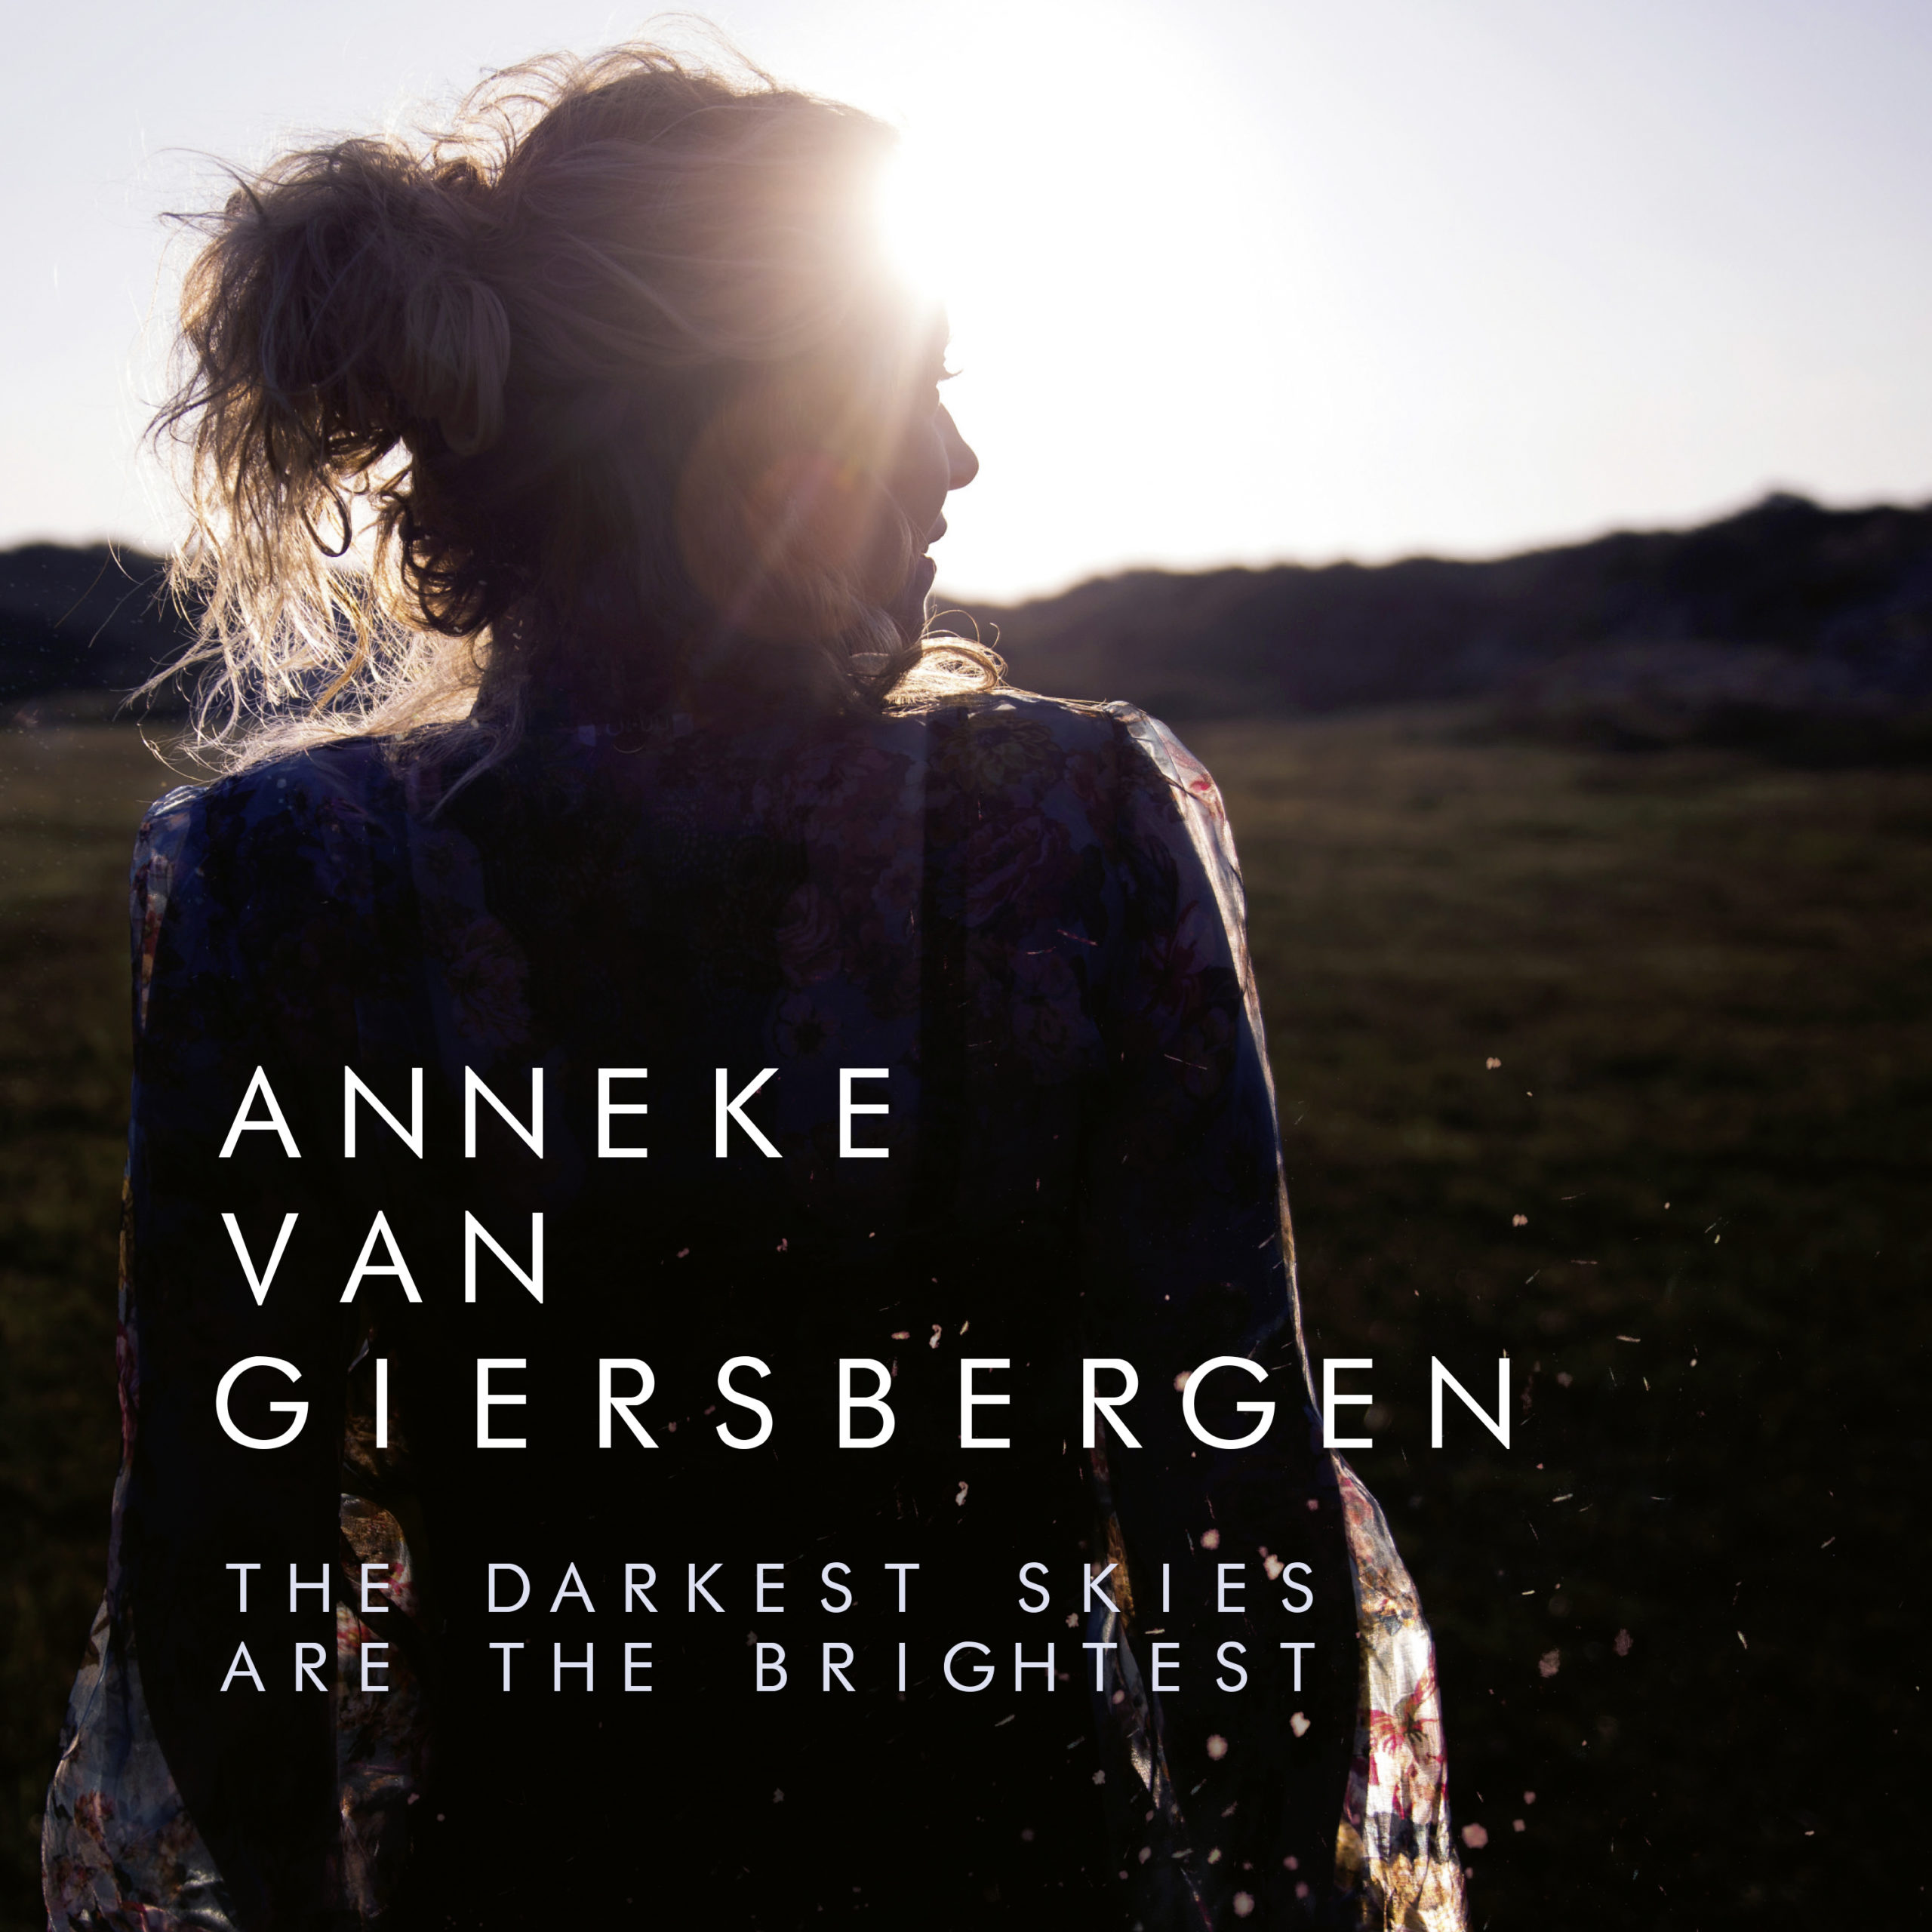 REVIEW: Anneke van Giersbergen – The Darkest Skies Are the Brightest